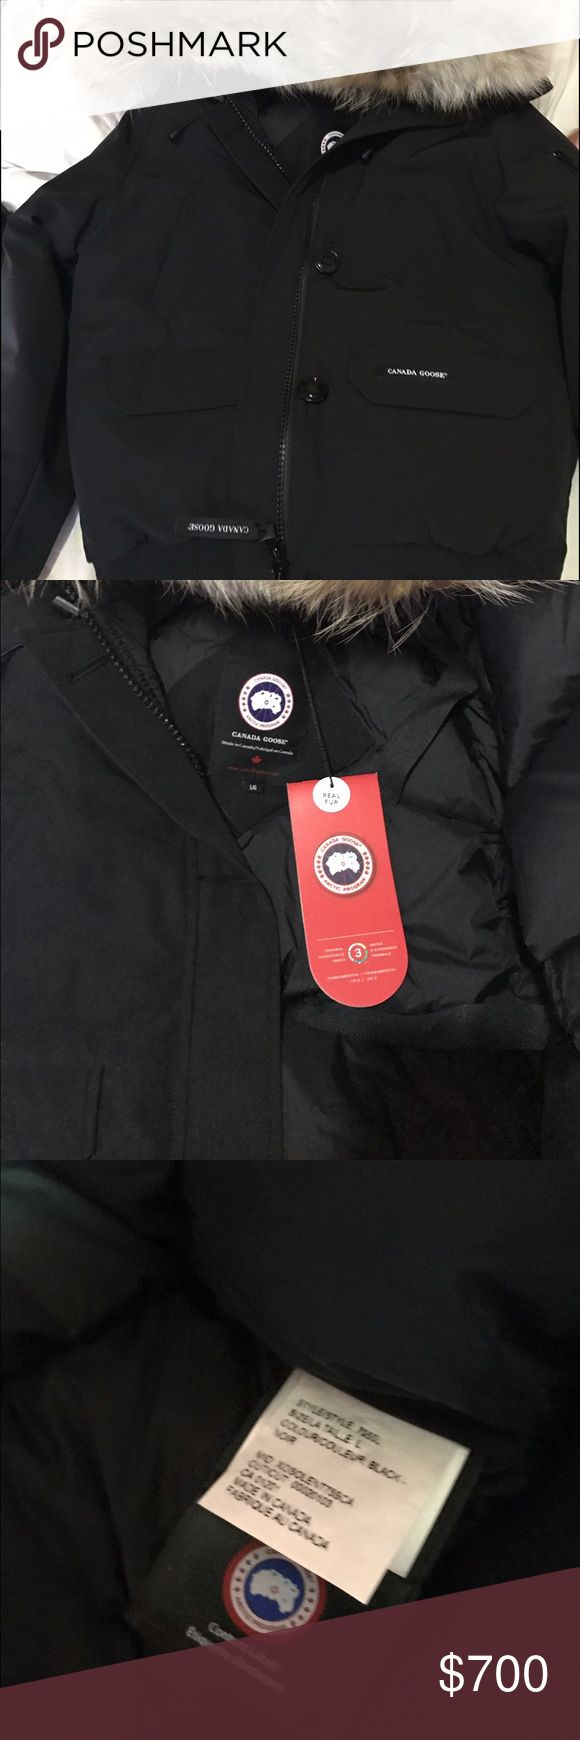 Canada Goose Bomber - Large (Women's) Large Canada goose Chilliwack Bomber in black with tags. Jackets & Coats